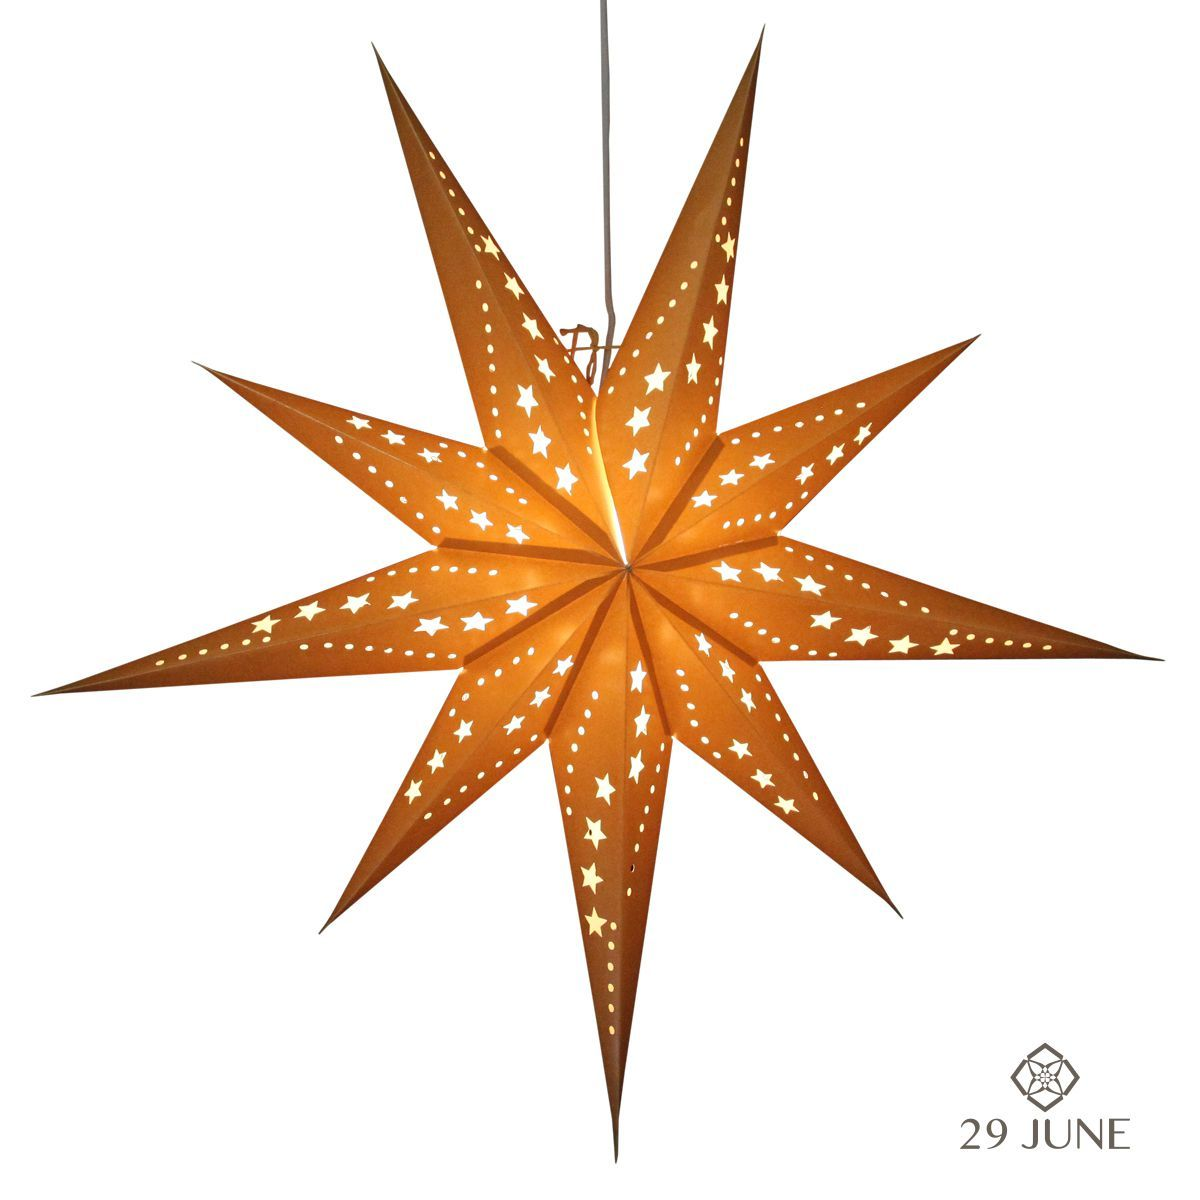 Sunlight Gold Hanging star lanterns http://www.29june.com/index.php/paper-stars/sunlight-gold.html